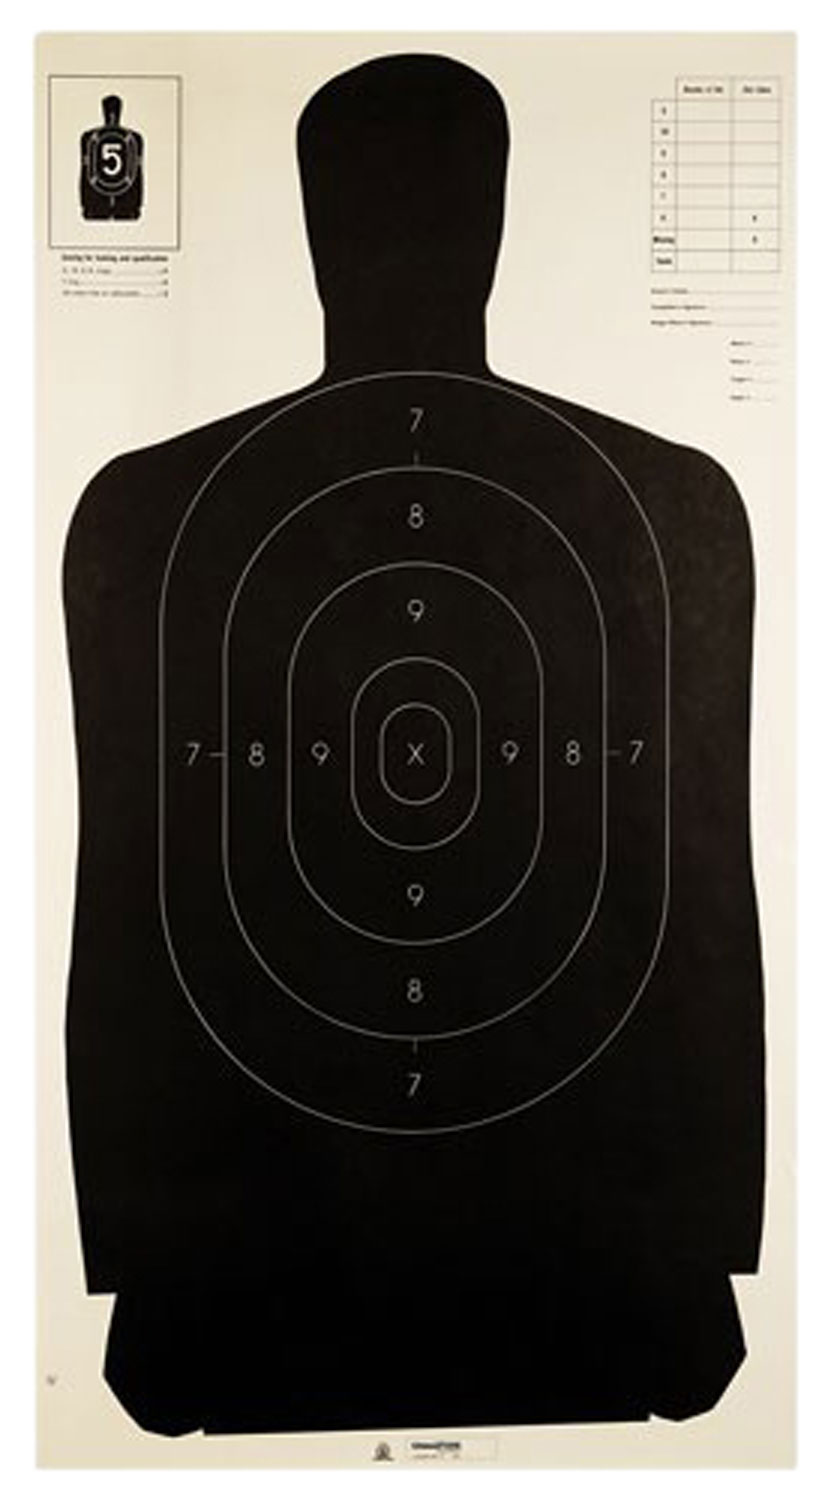 Champion Targets 40727 LE Targets Police Silhouette 100 Pack